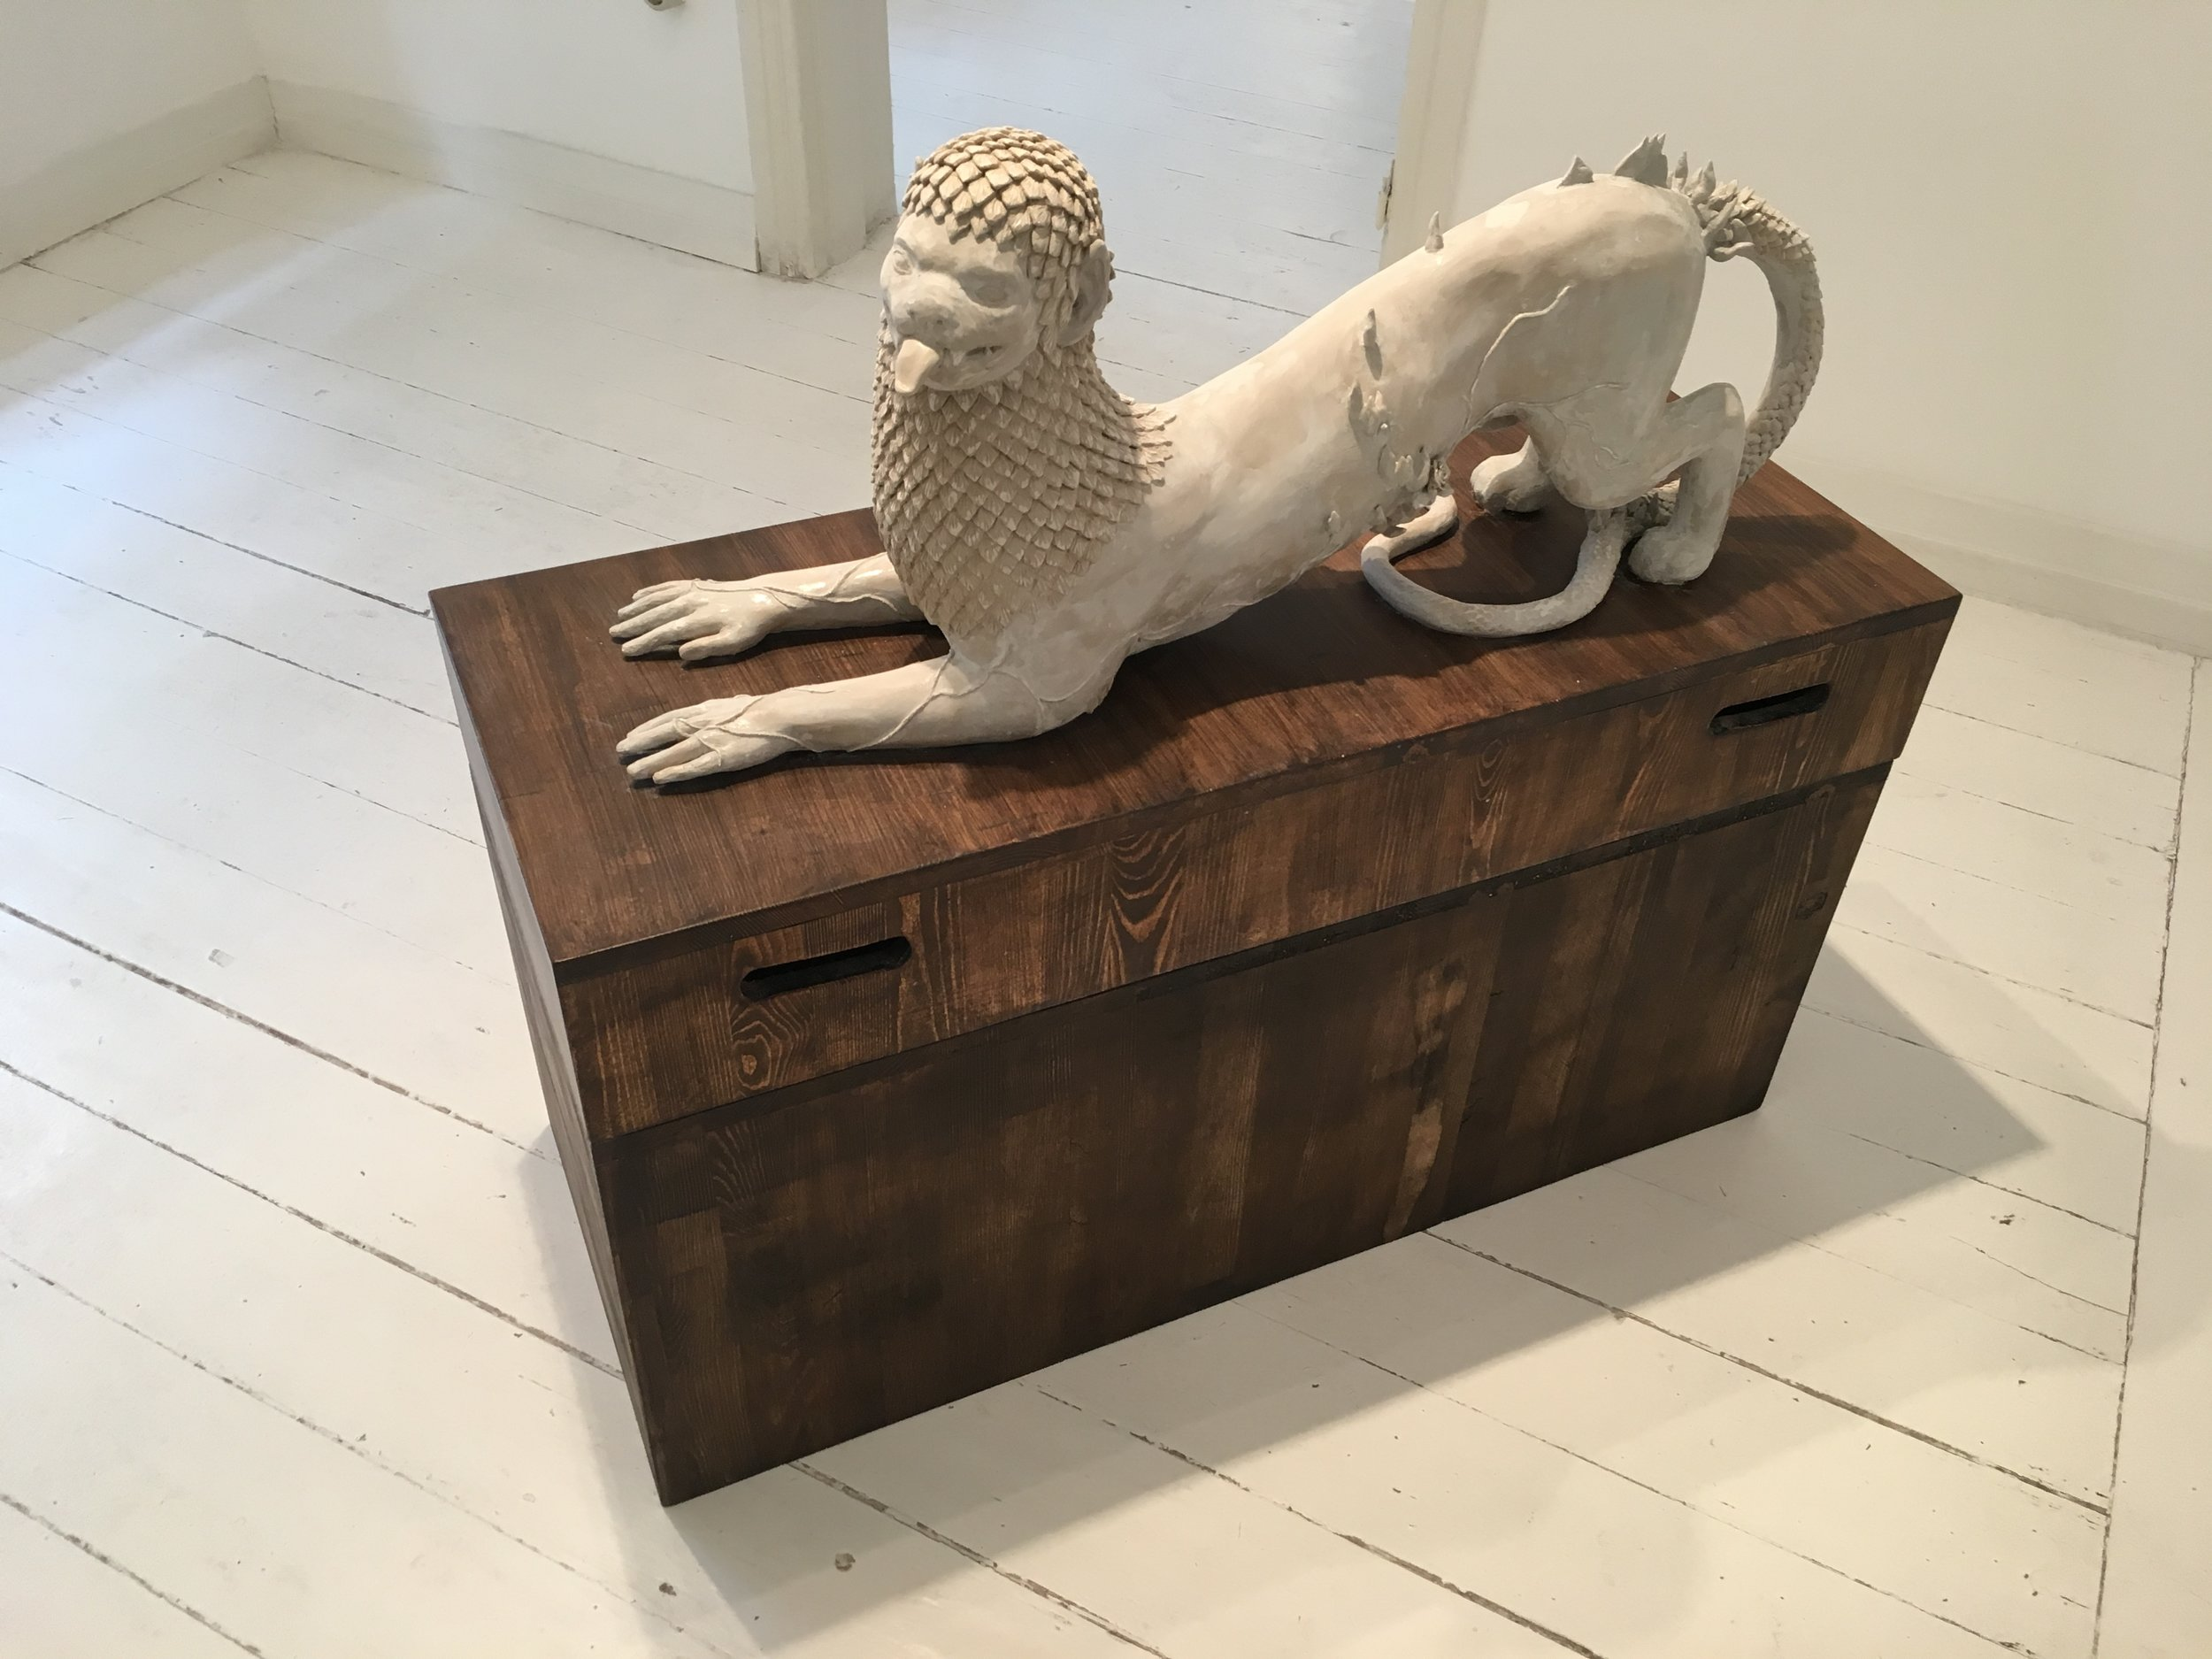 Clay, plaster, wooden plinth, 36x88x100x40cm